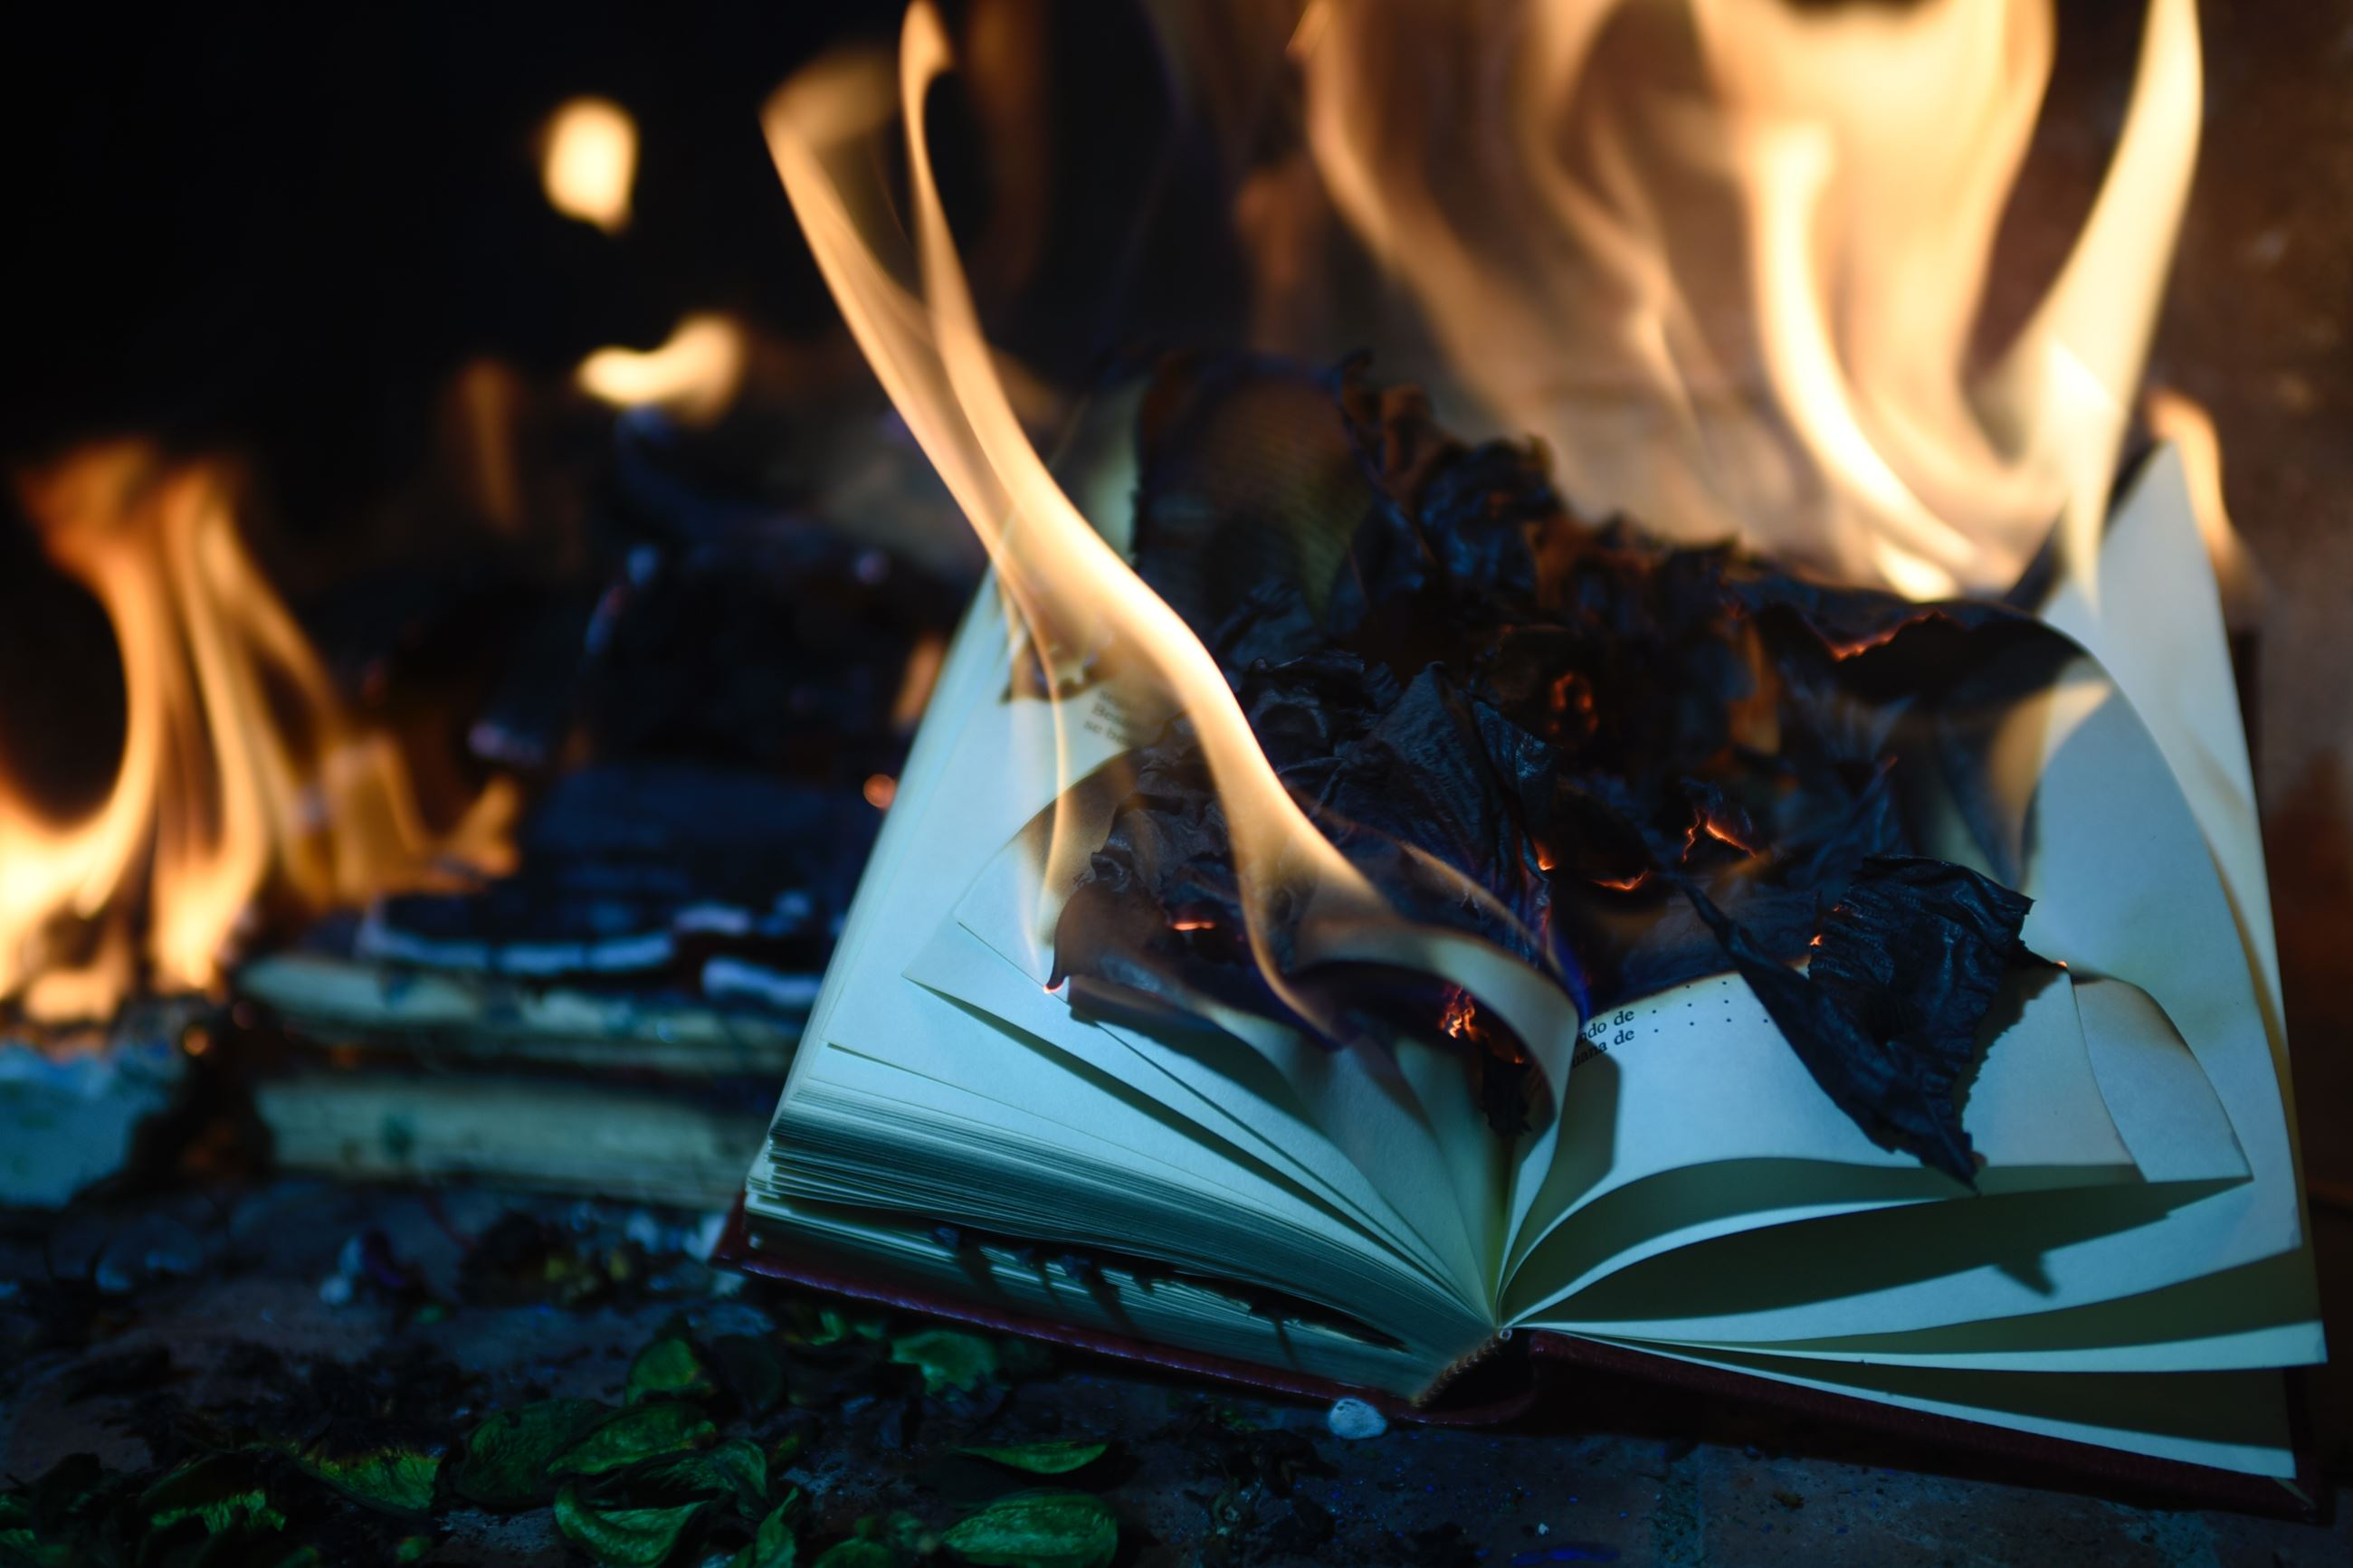 Book being burned